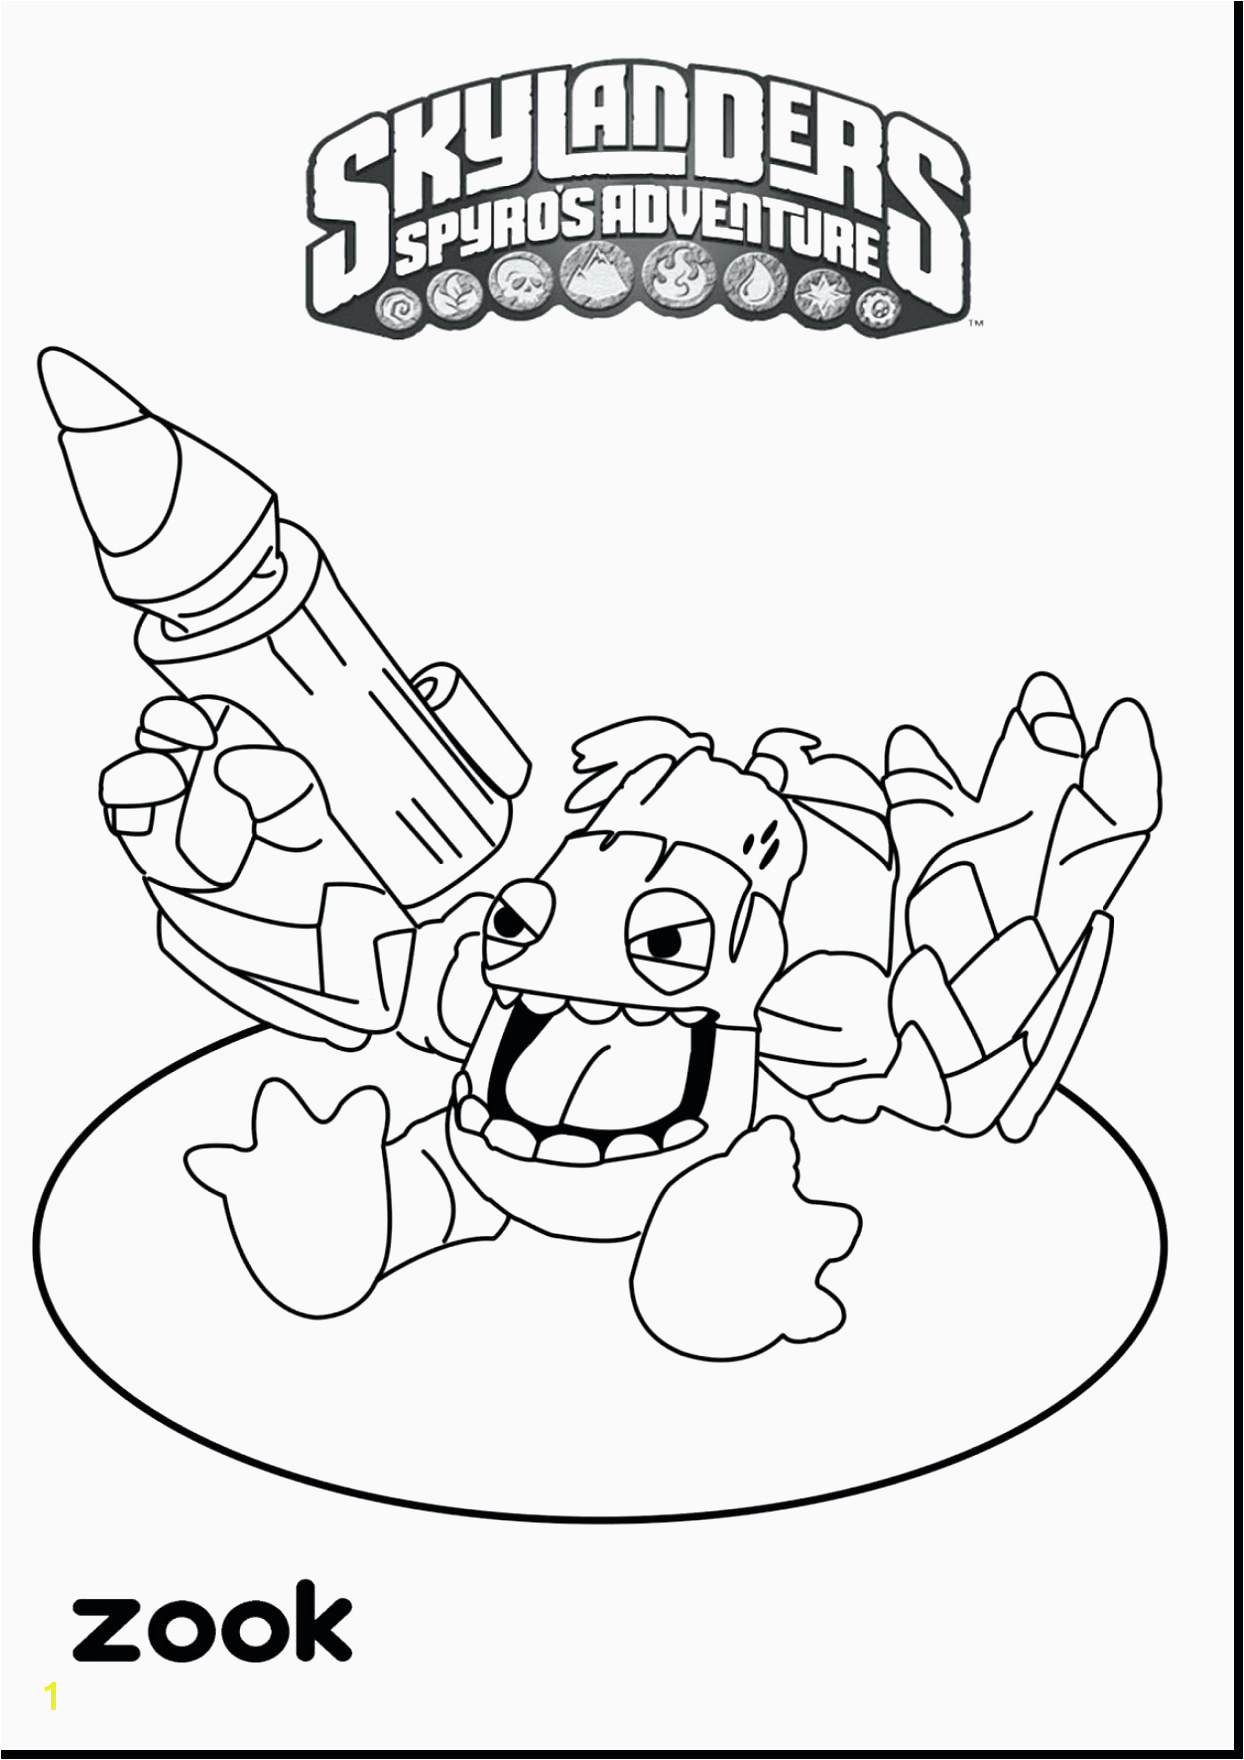 10000 Coloring Pages Coloring Pages Cool Coloring Pages